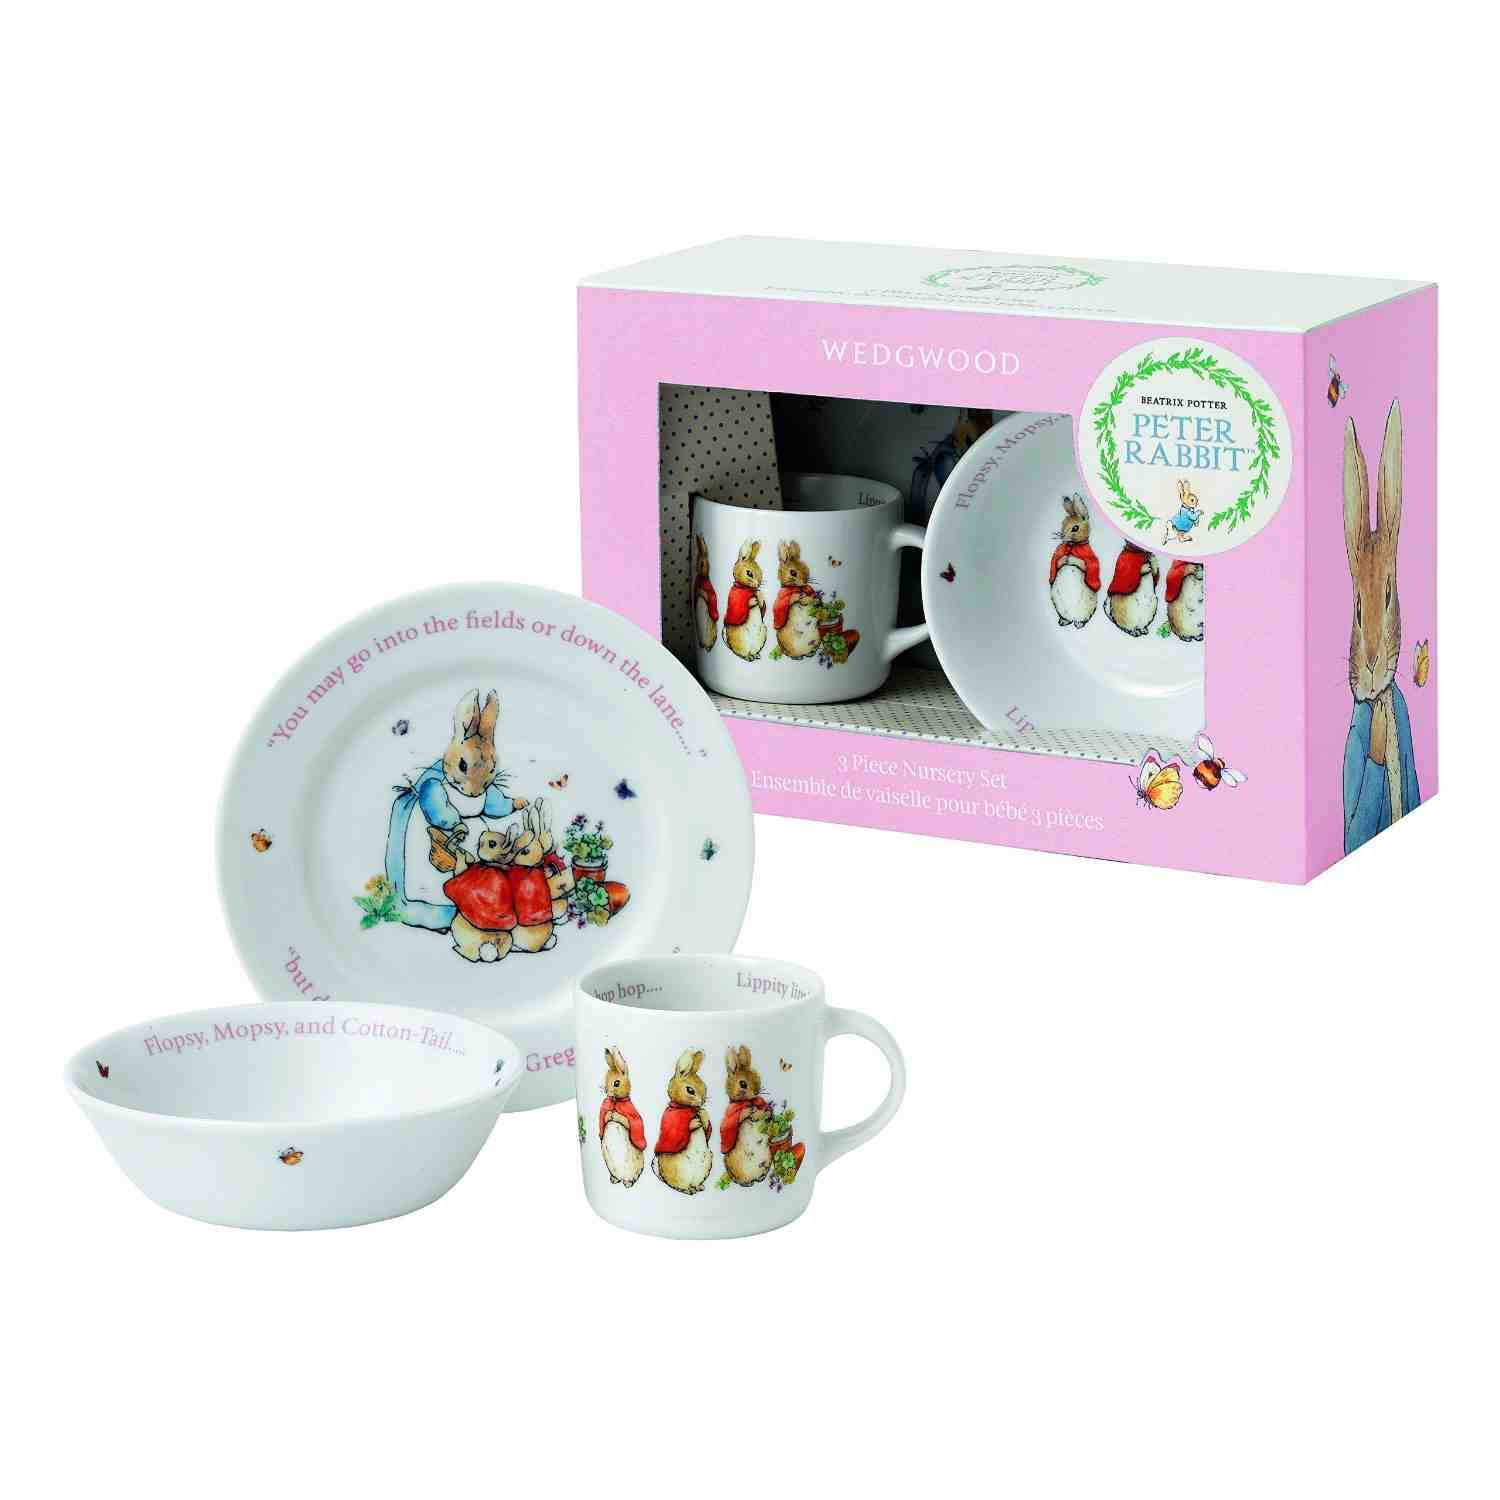 Wedgwood 3pc Peter Rabbit Set | Pink